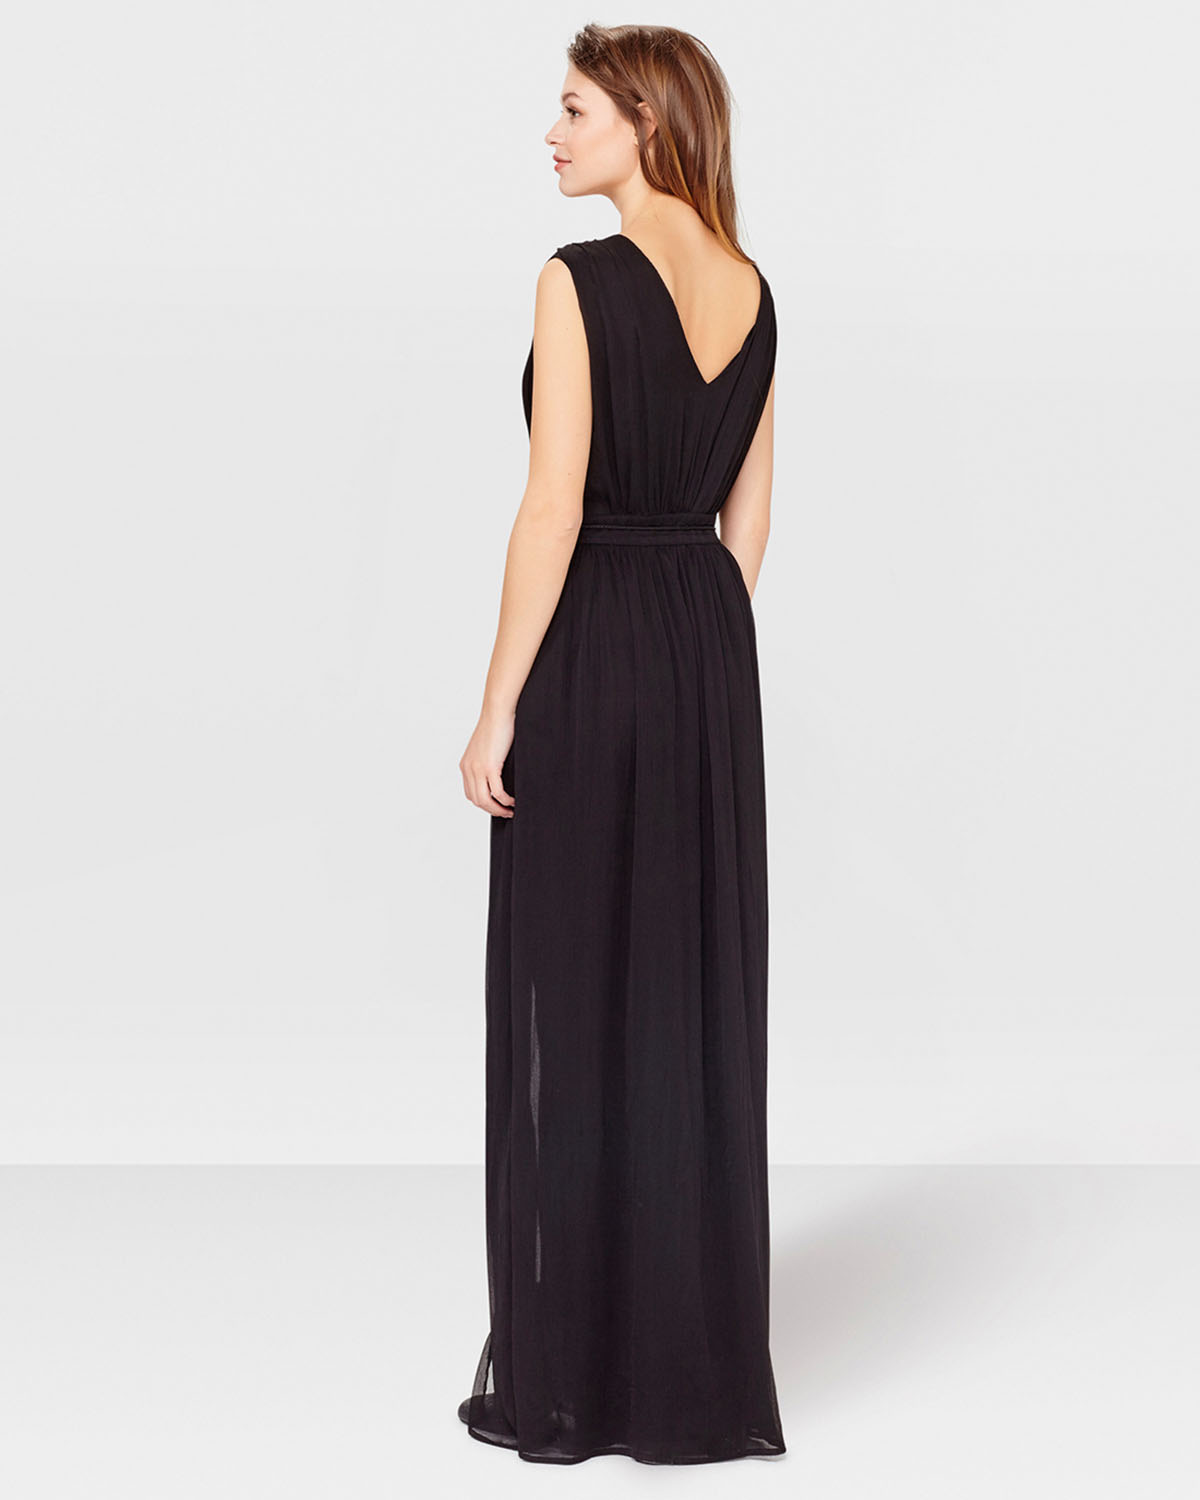 Maxi Jurk Zwart.Dames Maxi Dress 78965294 We Fashion